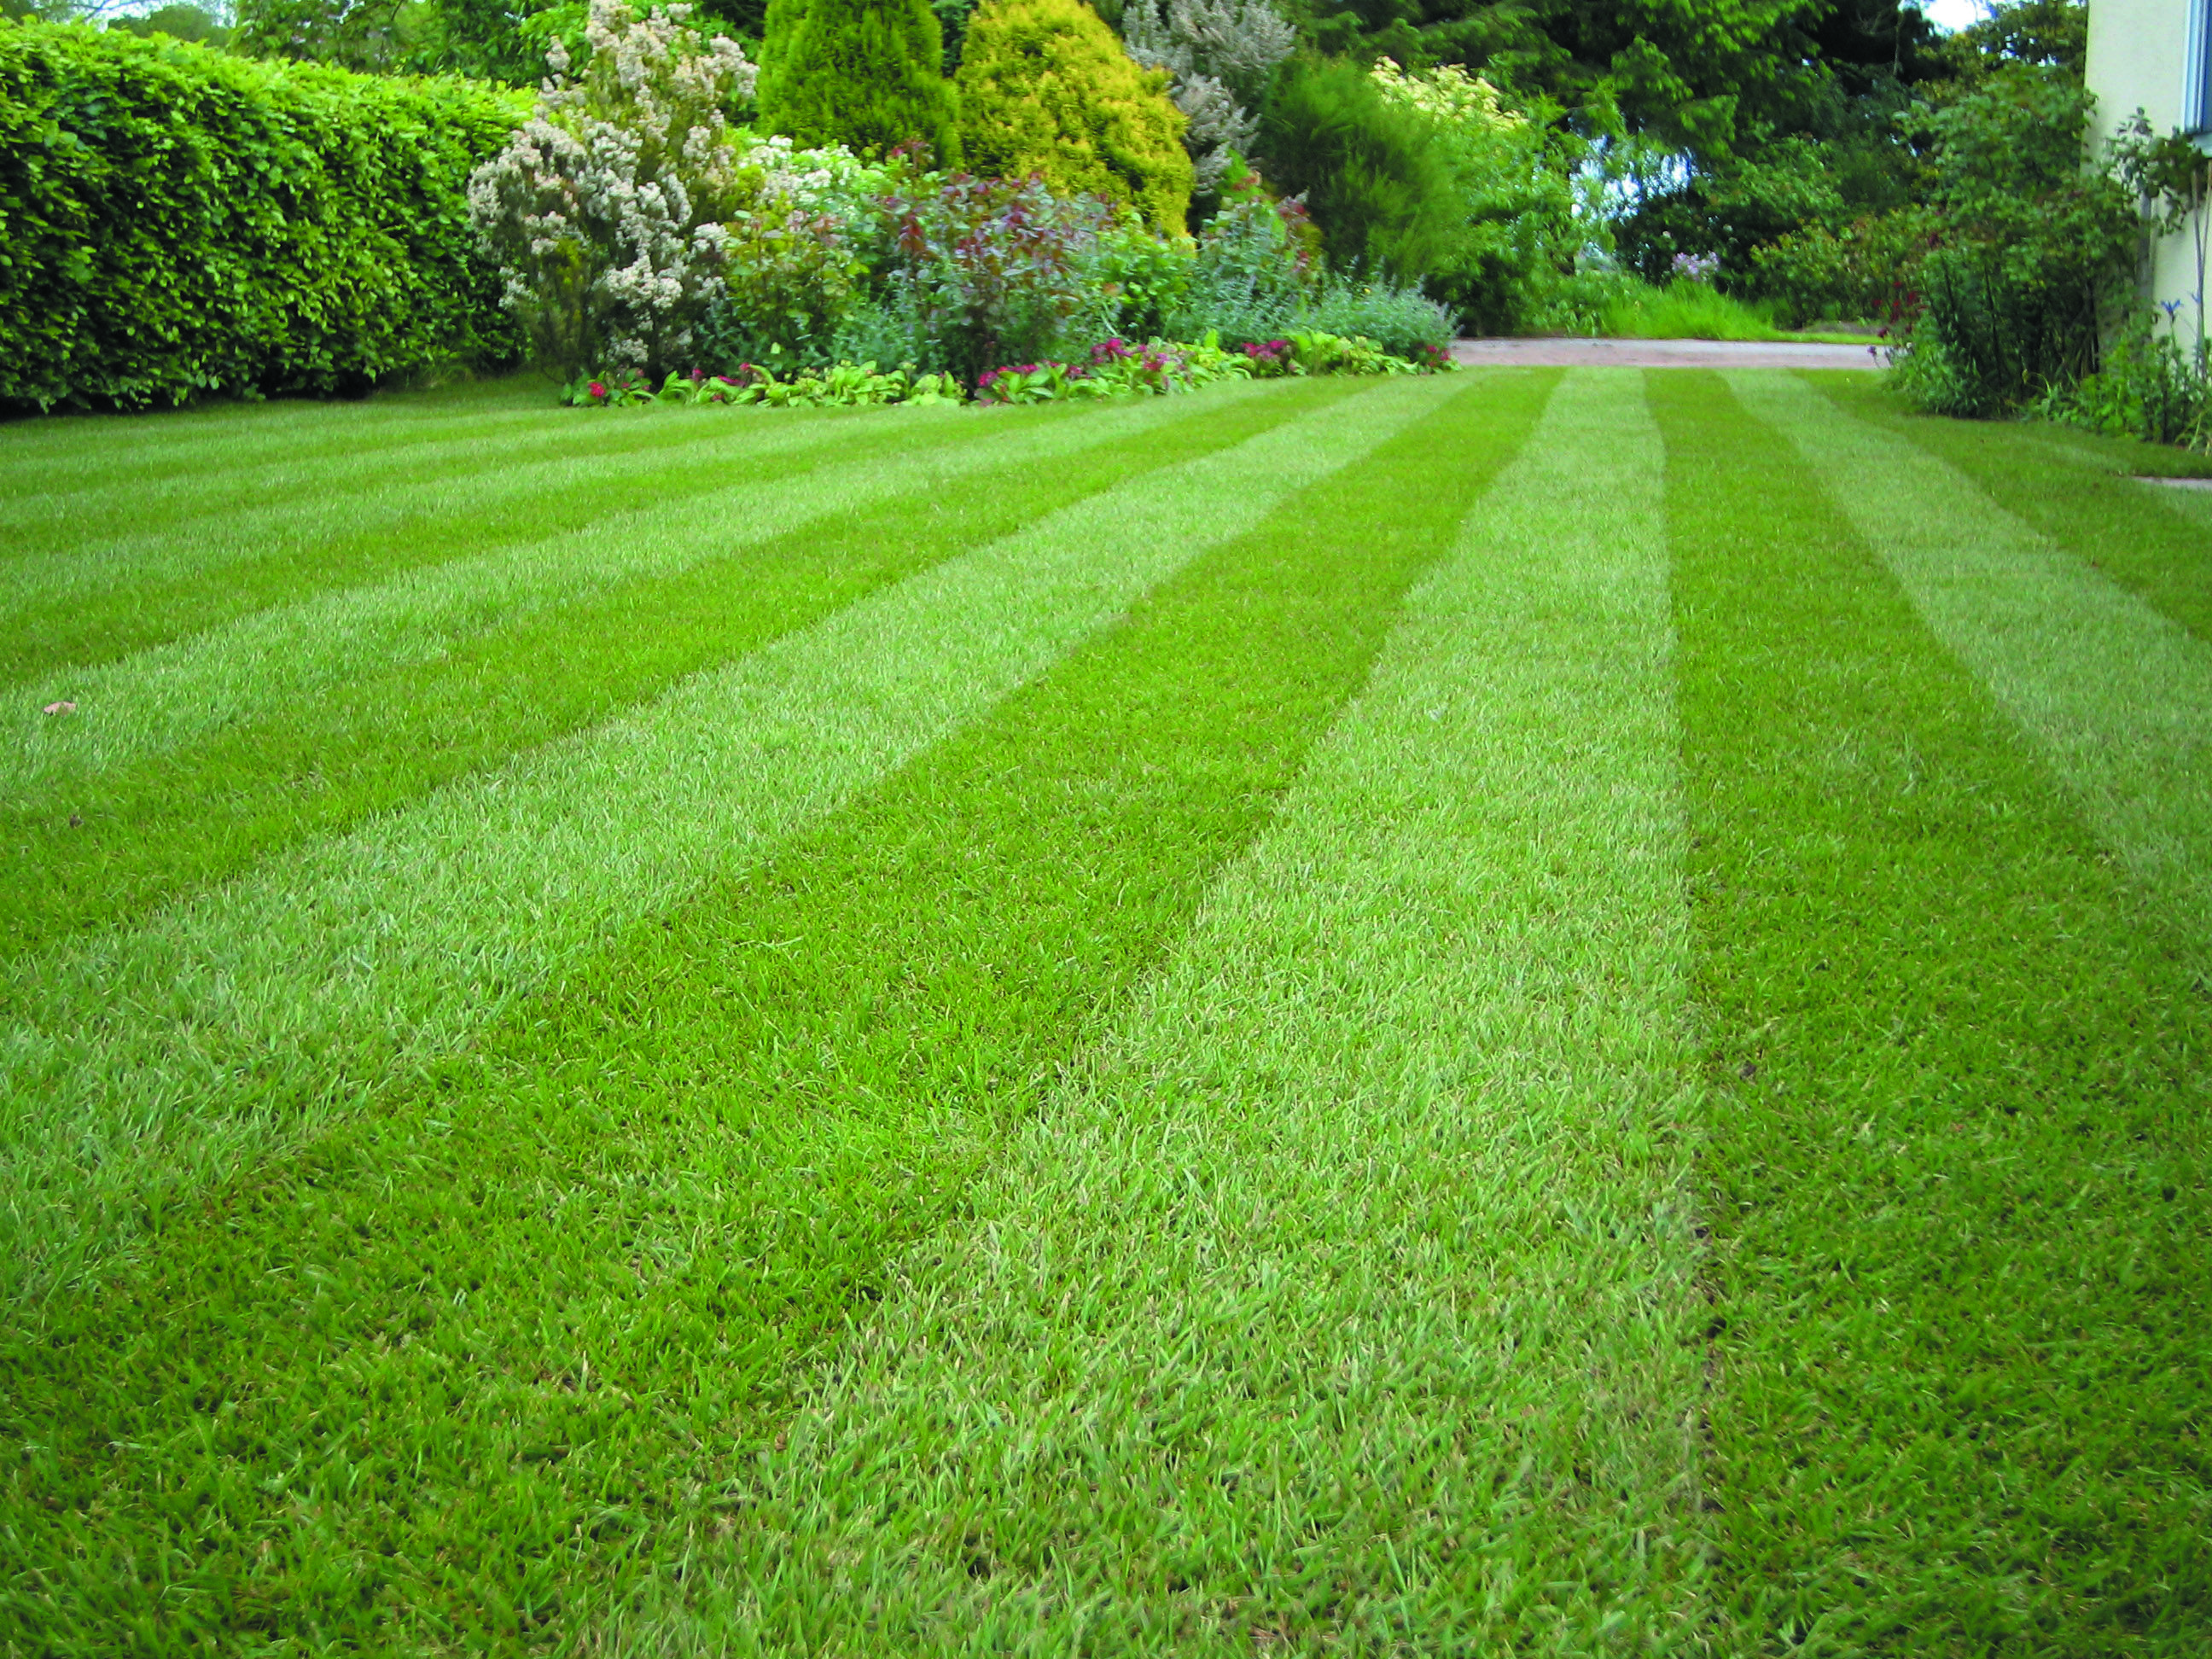 A lawn created using the Green Velvet Water Saver Lawn